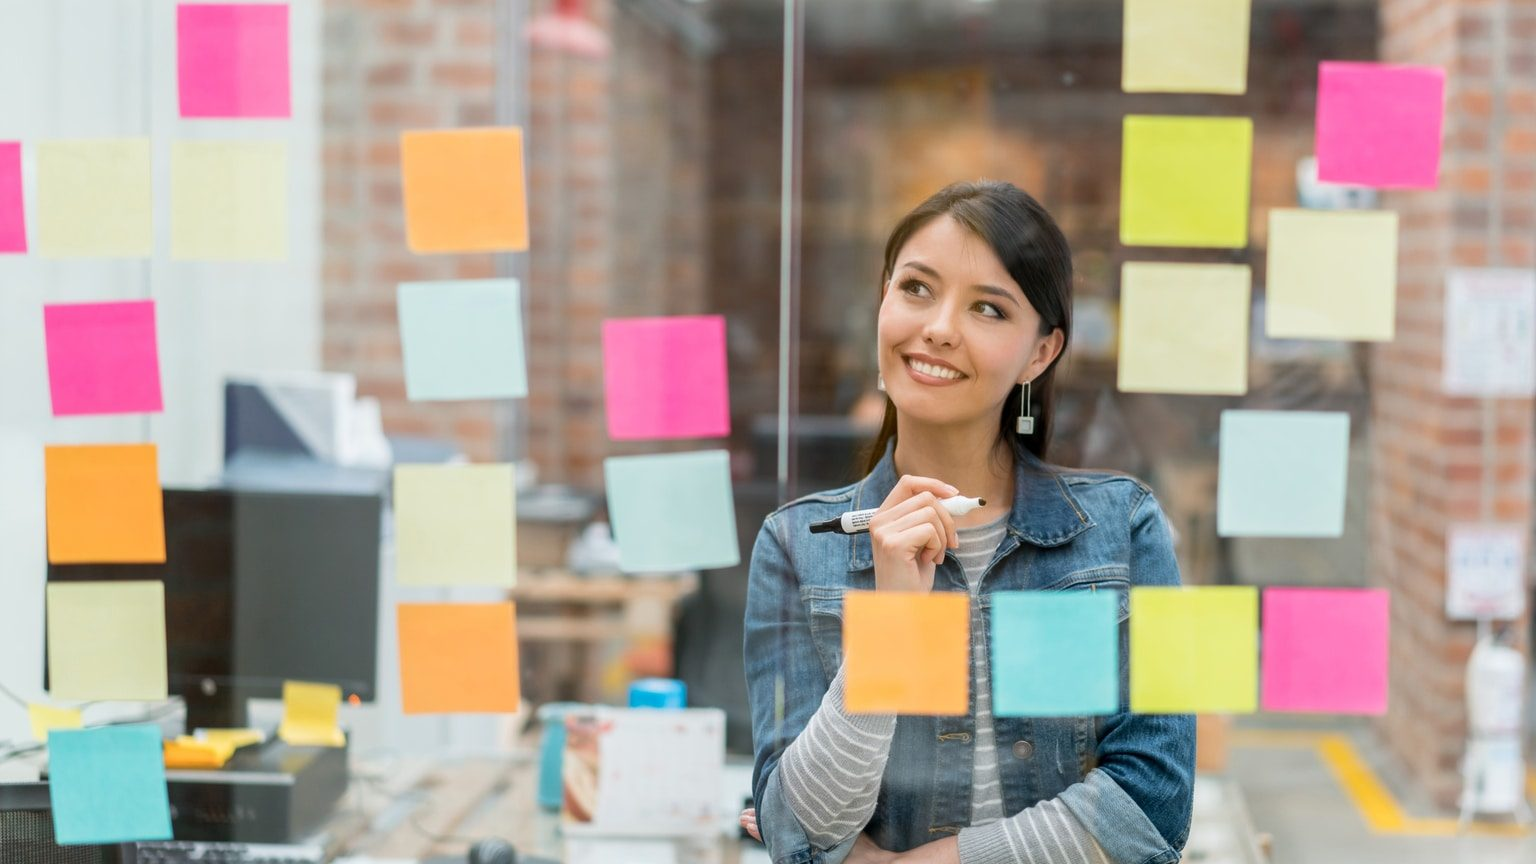 Smiling woman writing a marketing plan on sticky notes